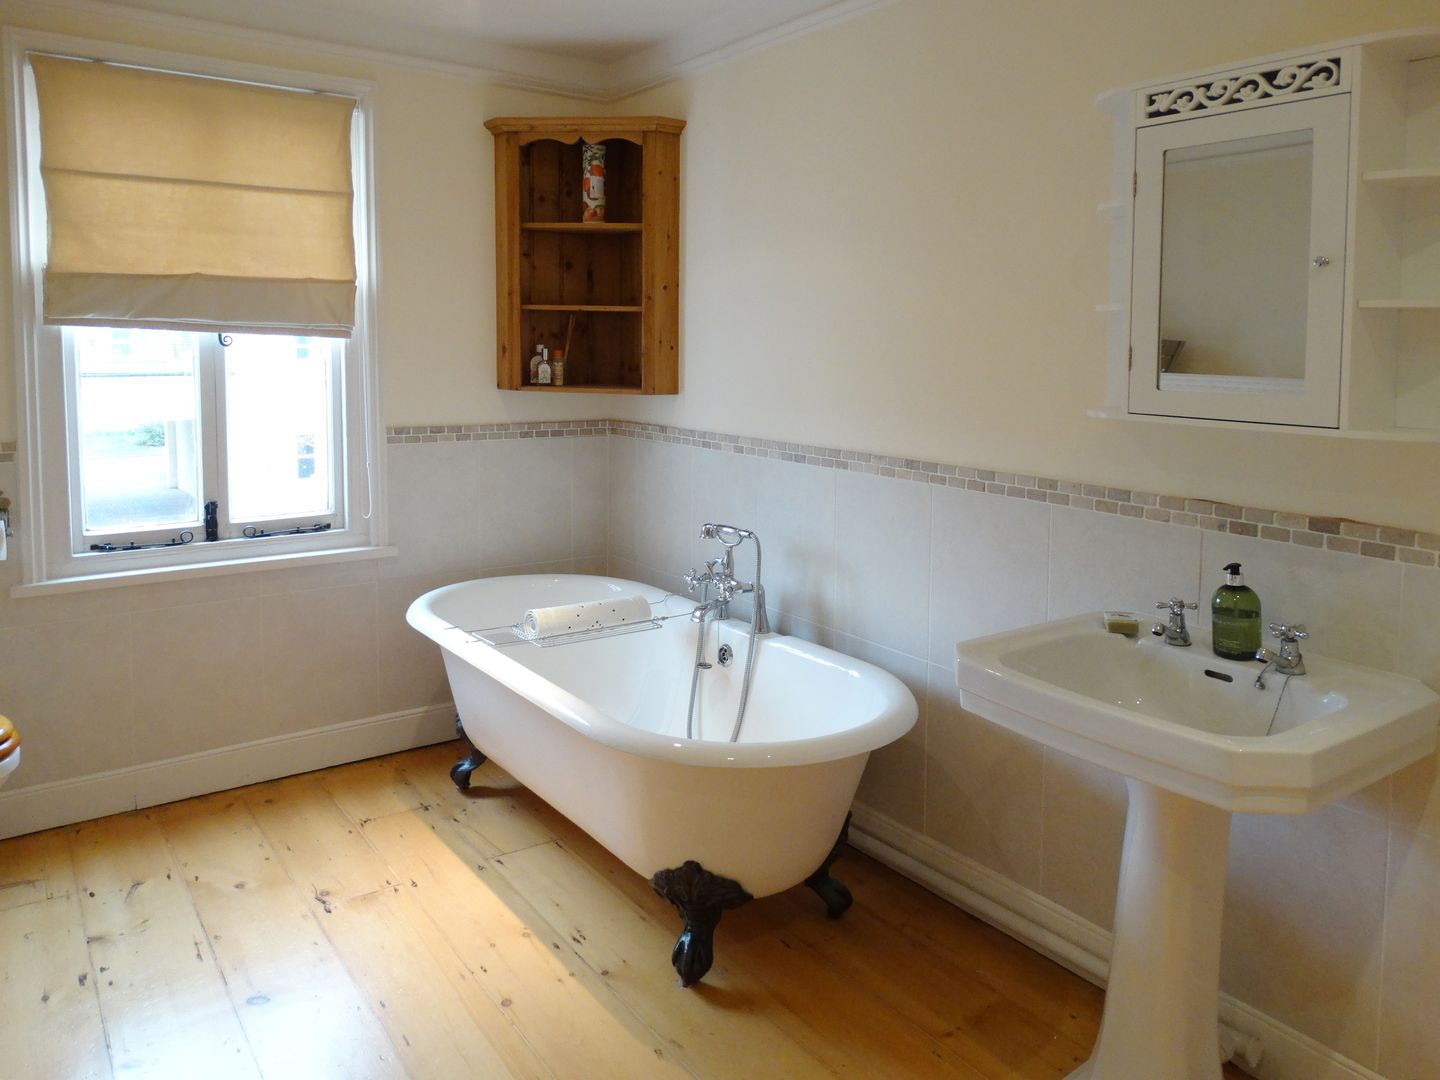 24 Victoria Road Topsham Family Bathroom